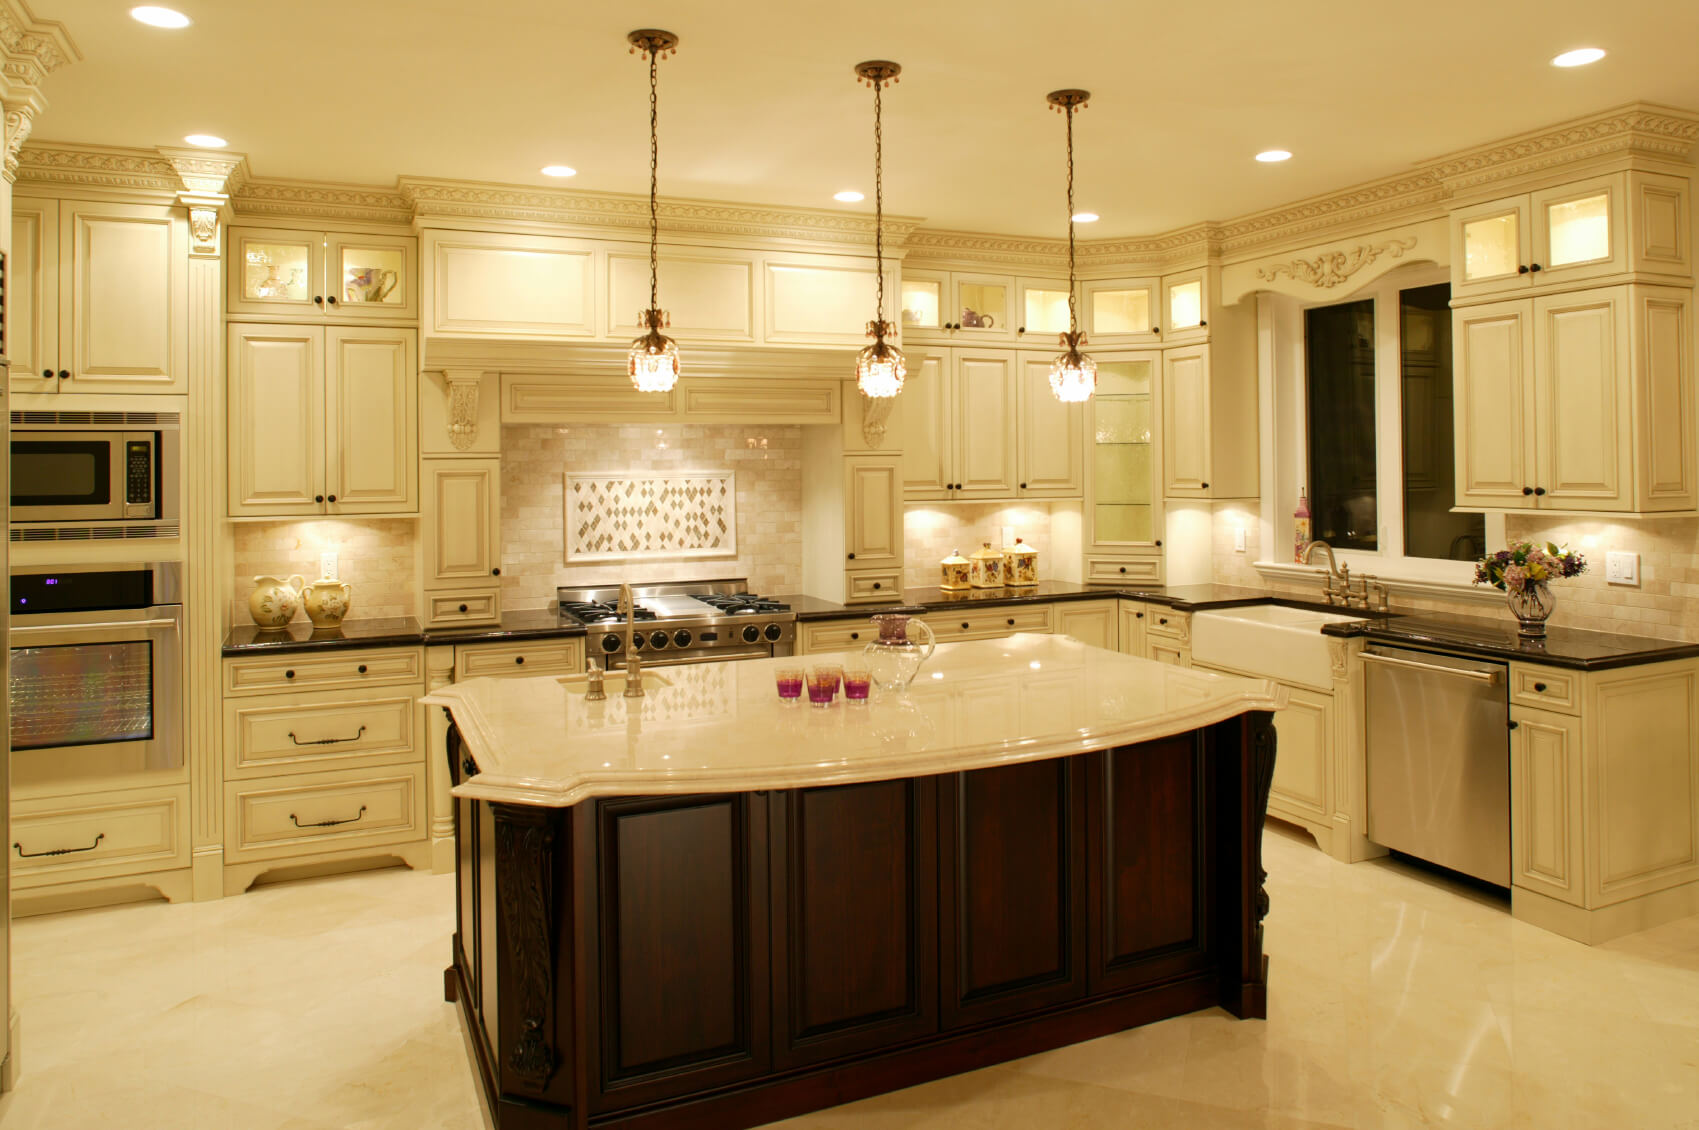 Charmant Luxurious Kitchen Awash In Light Marble Tones, Dominated By Large Dark Wood  Island With Filigreed